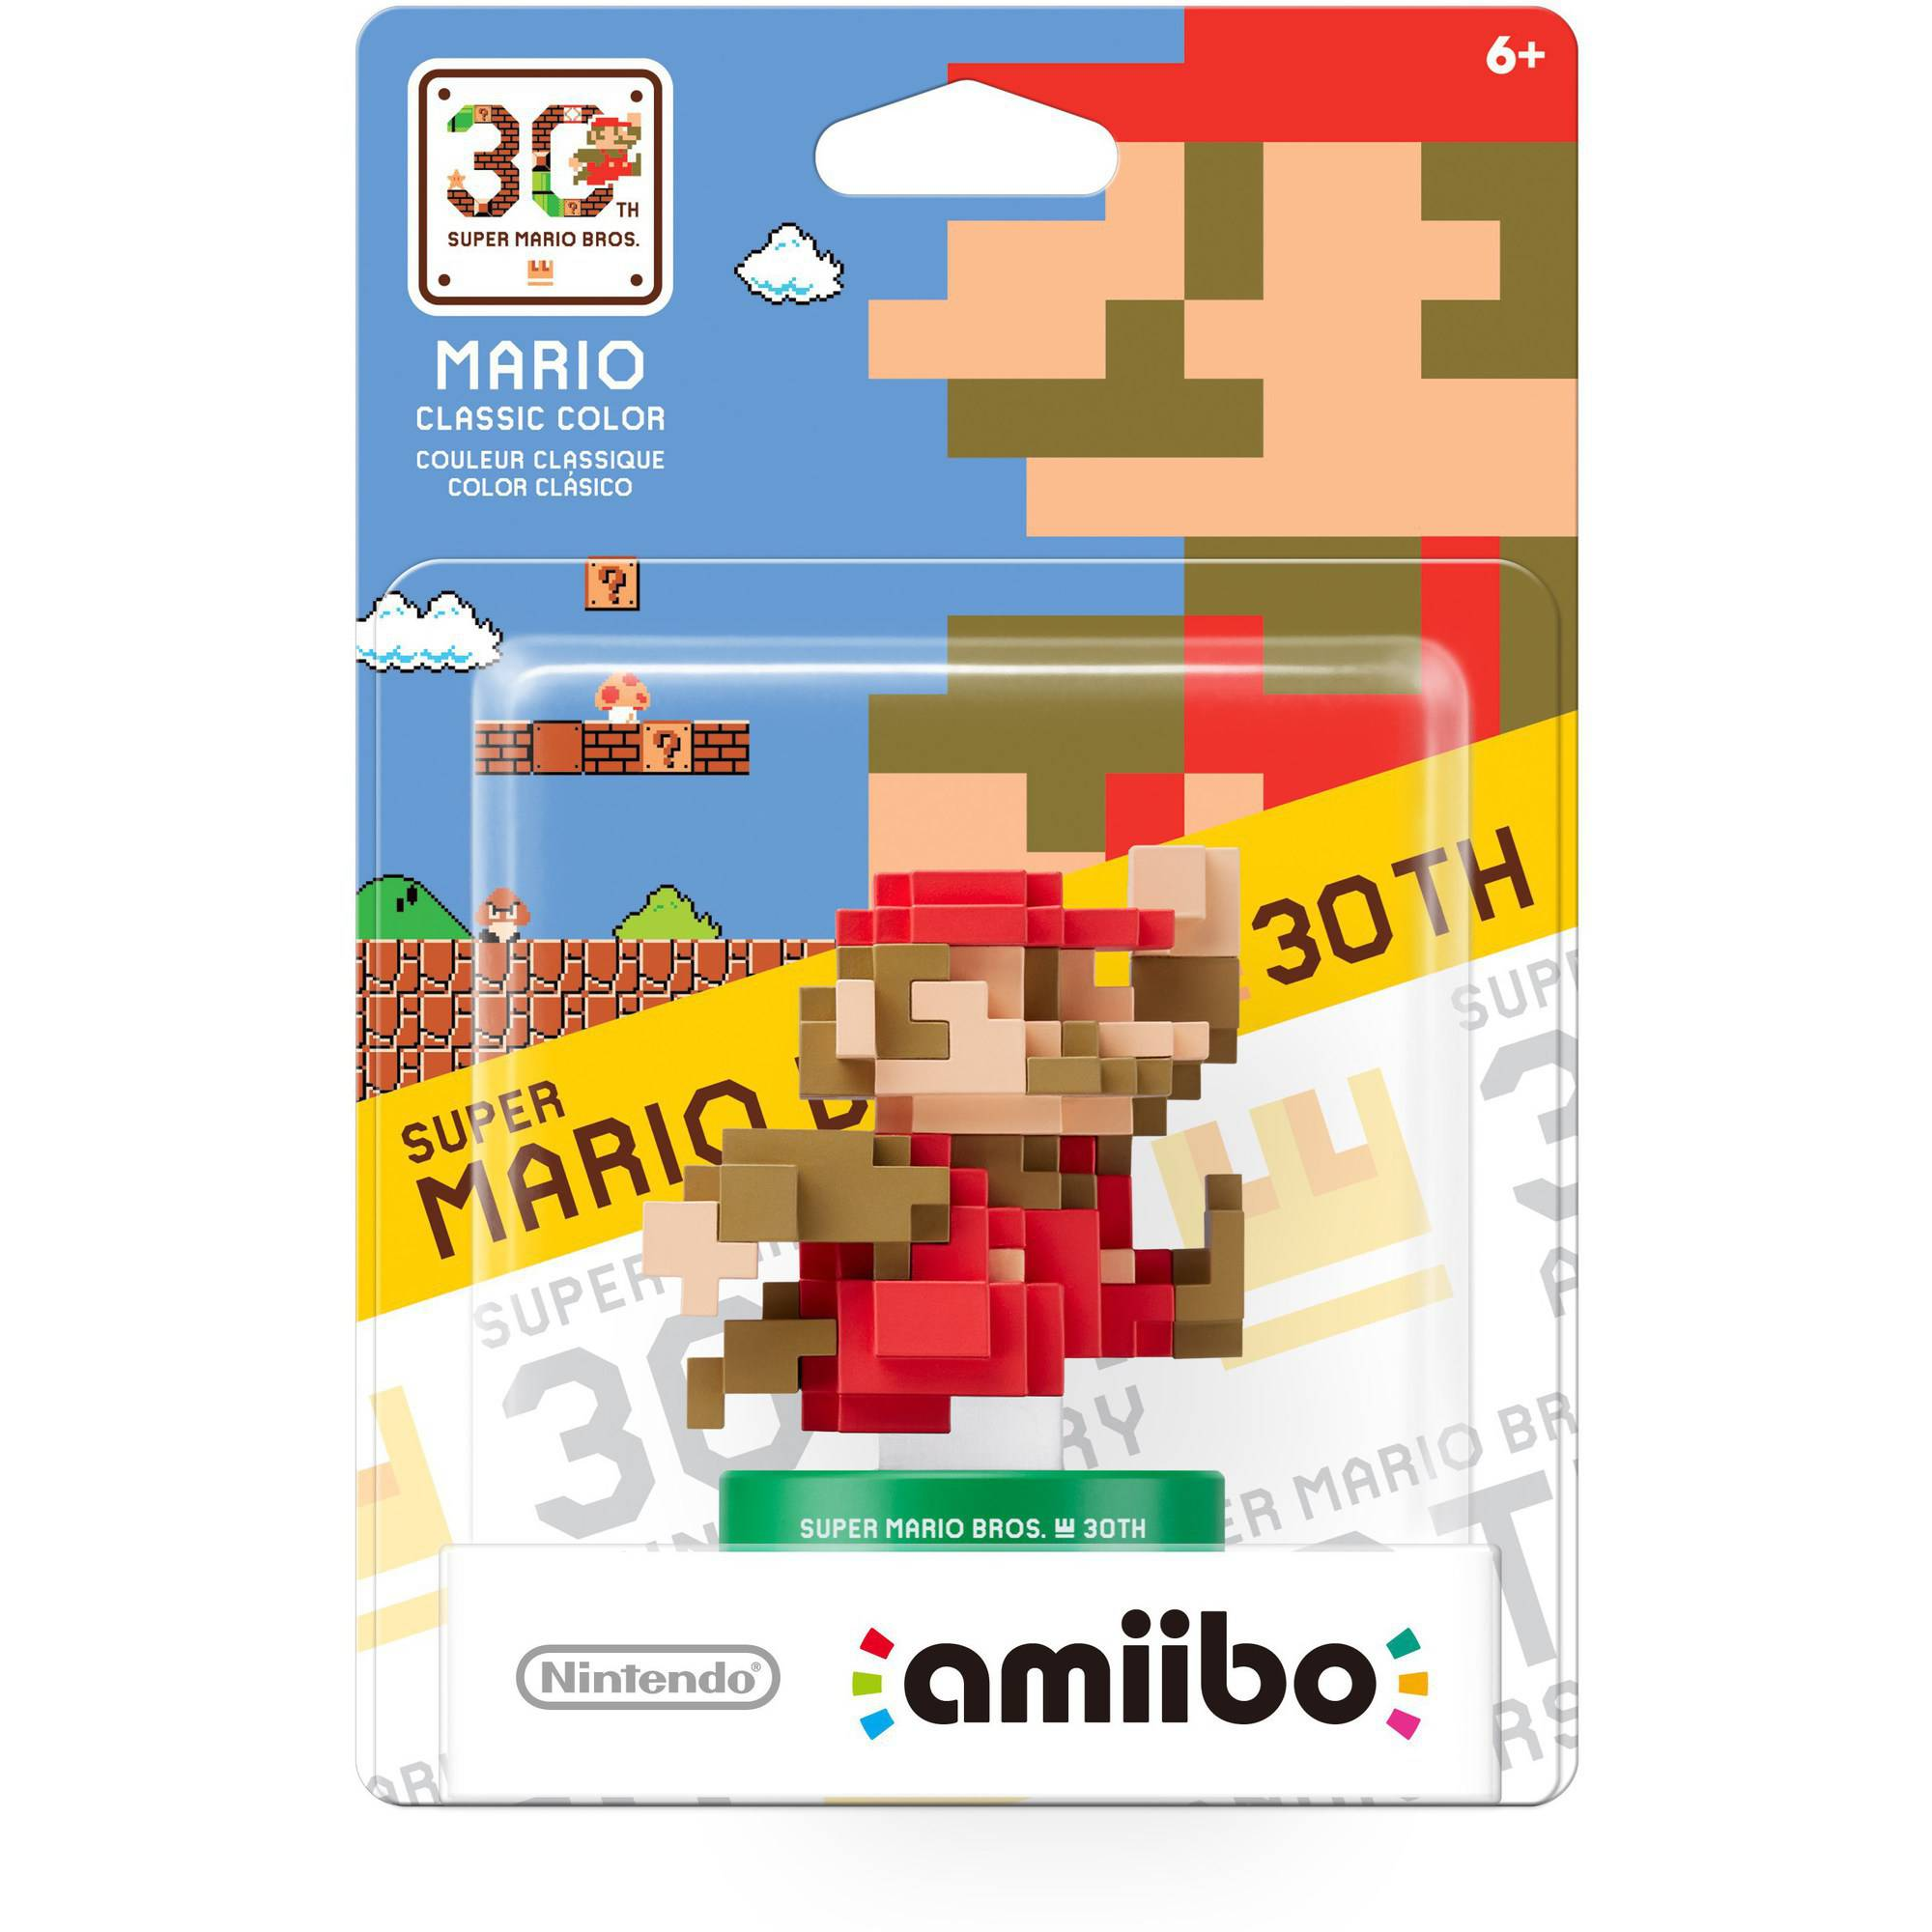 Mario Classic Color 30th Anniversary Series amiibo (Nintendo WiiU or New Nintendo 3DS)